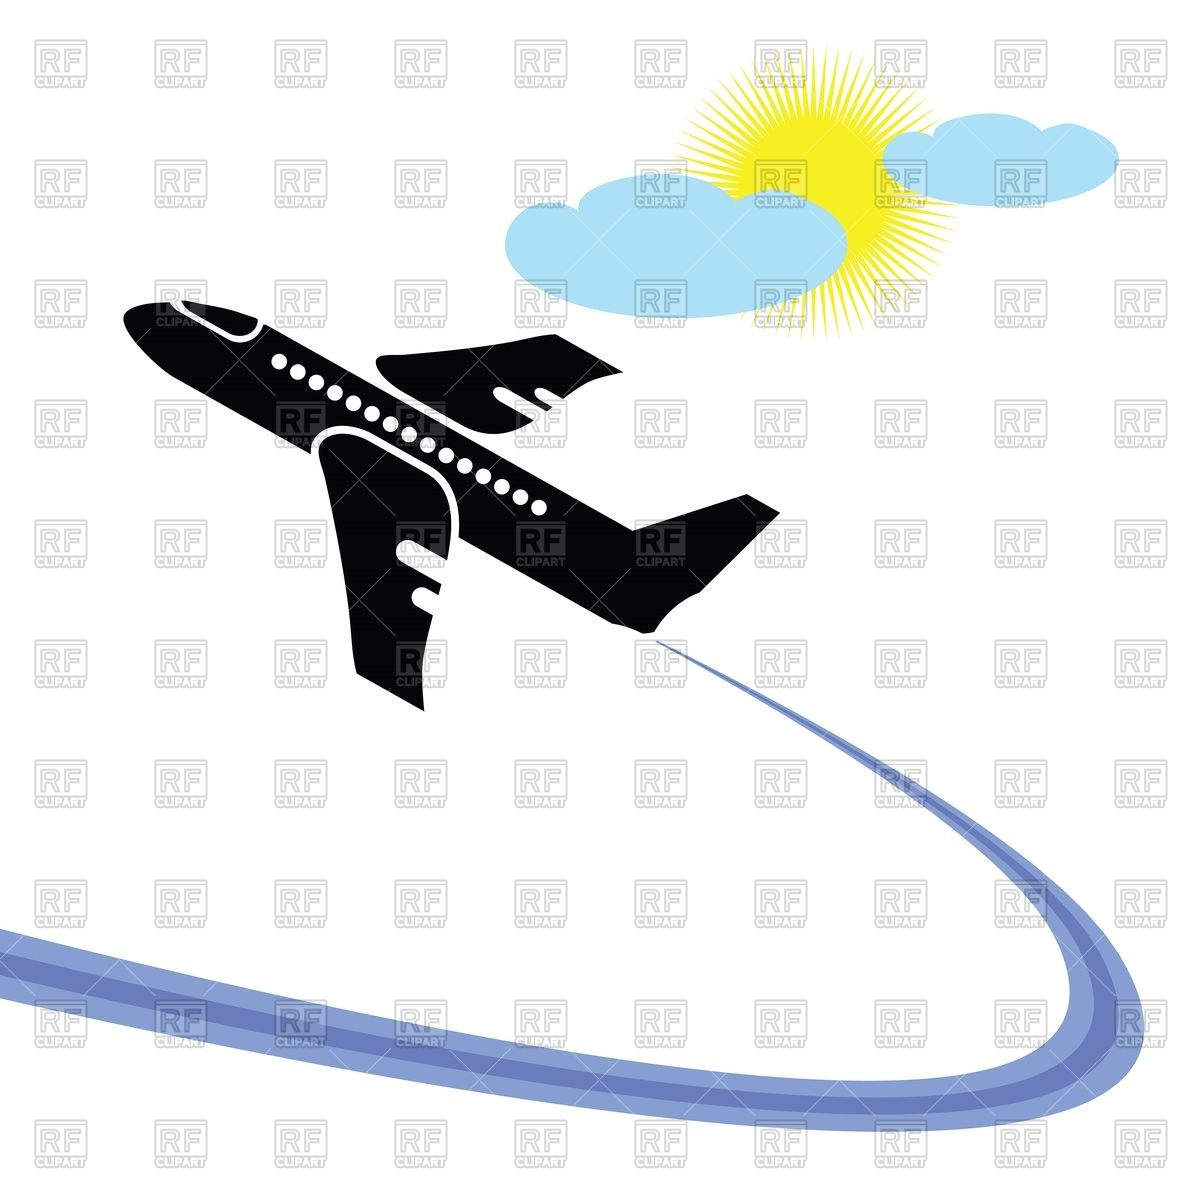 Simple airplane takeoff Vector Image #44293.